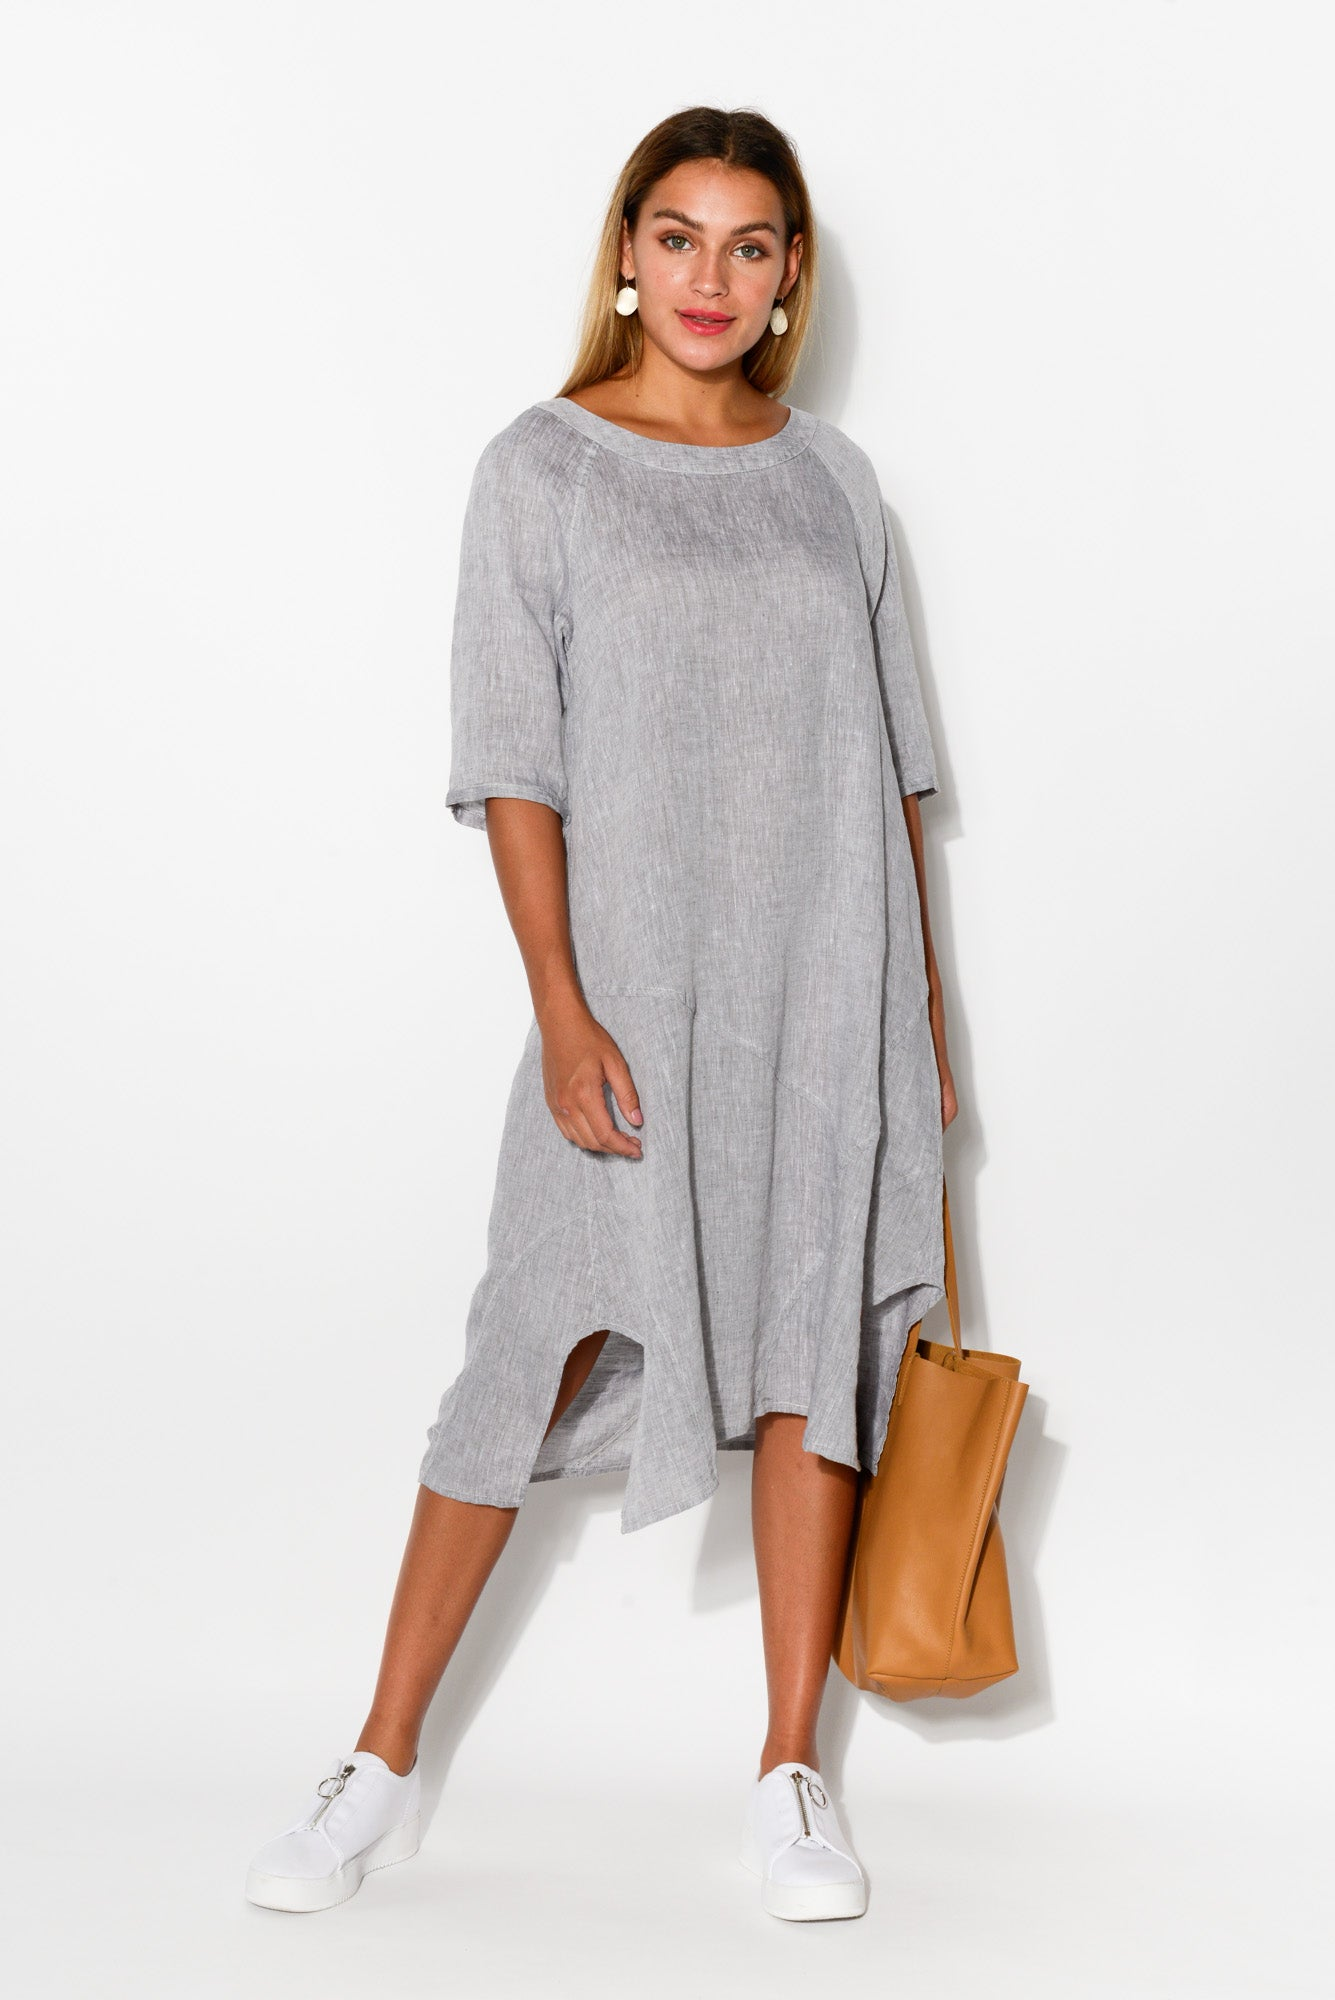 Ash Grey A Line Linen Dress - Blue Bungalow